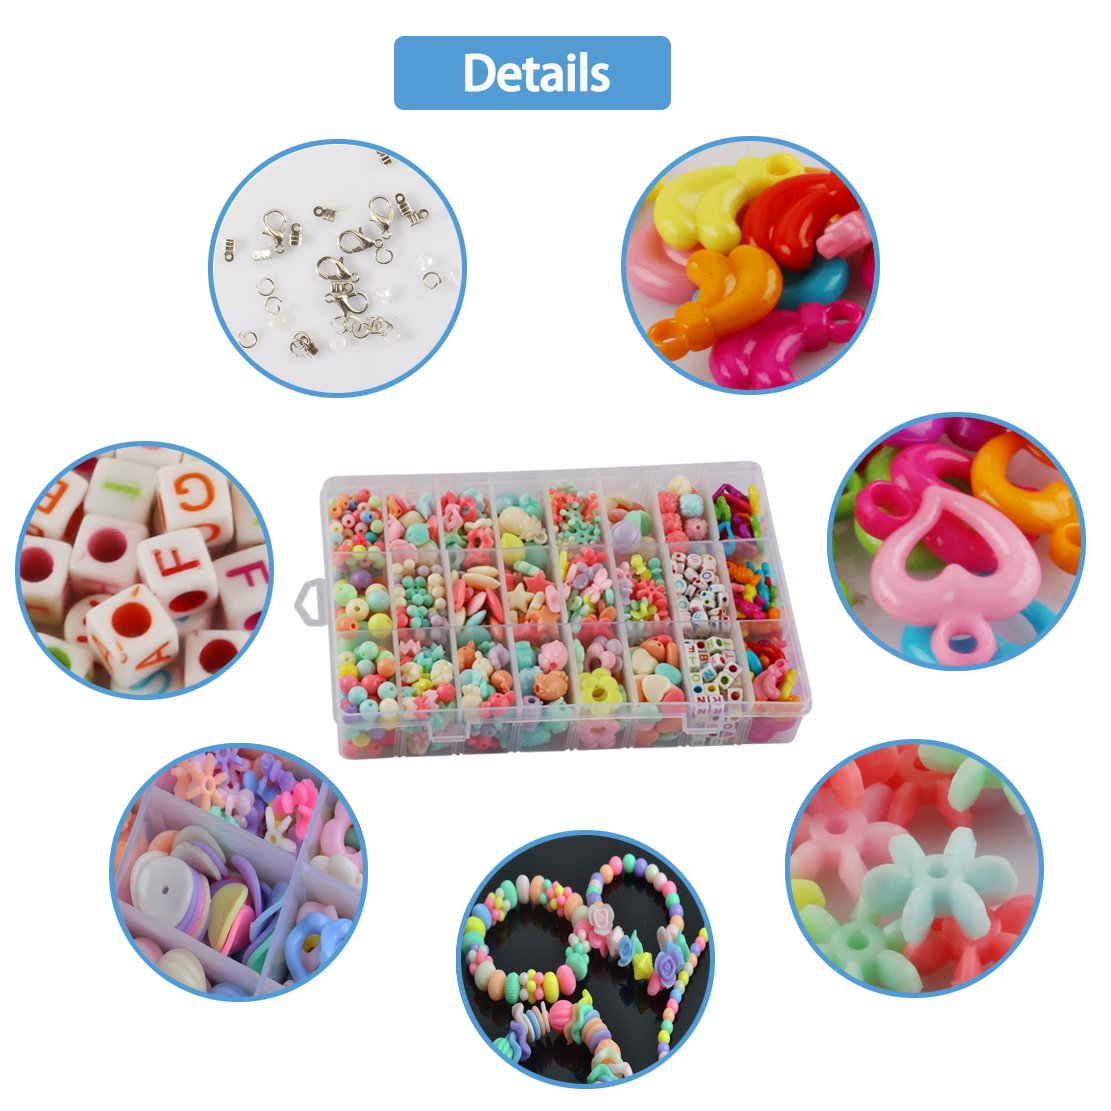 BPA Free Creativity Beading Toys for Party Games,DIY Bead Crafts Kit for Necklace Bracelet Rings Headband Jewelry Making w//Gift Box for Kids Aged 4 and Up,650+ pcs PopBeads02 STSTECH Pop Beads Set